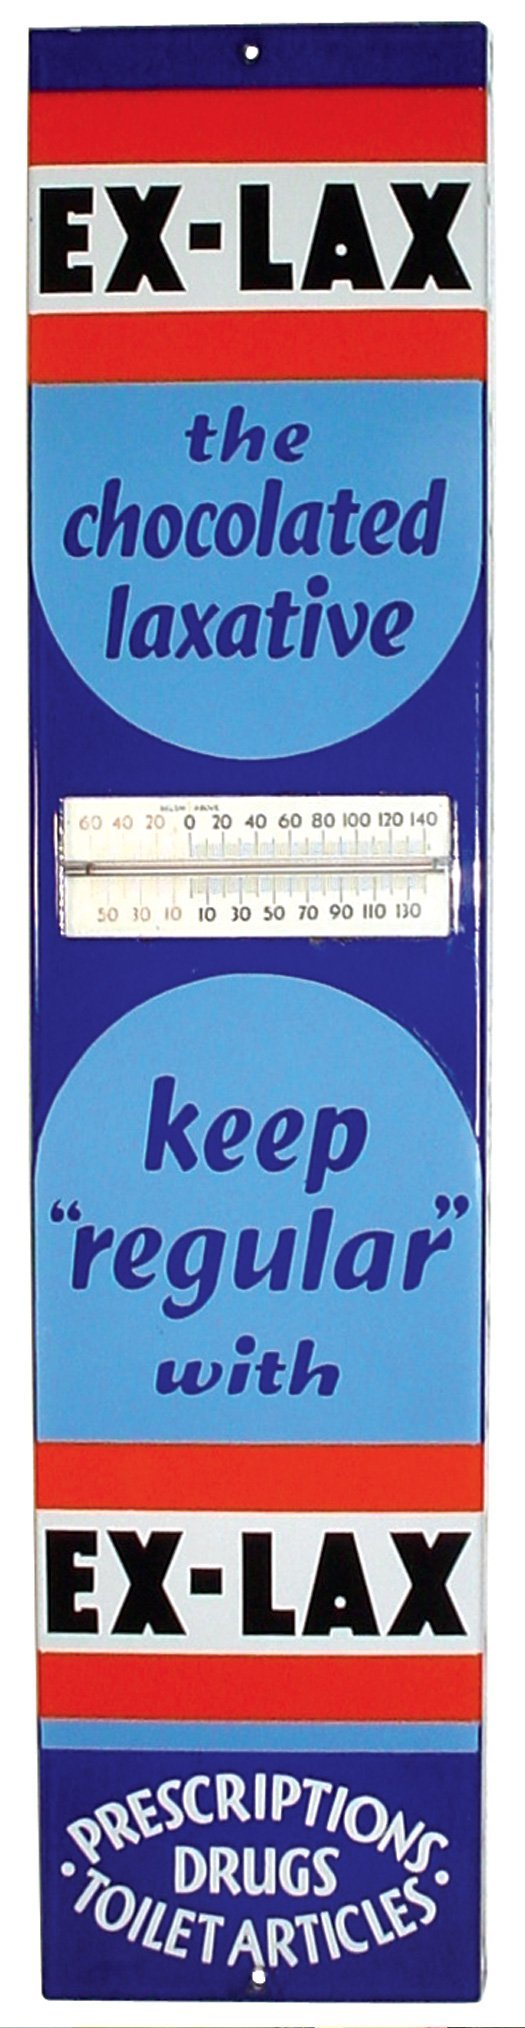 721: Drug store porcelain thermometer for Ex-Lax Laxati